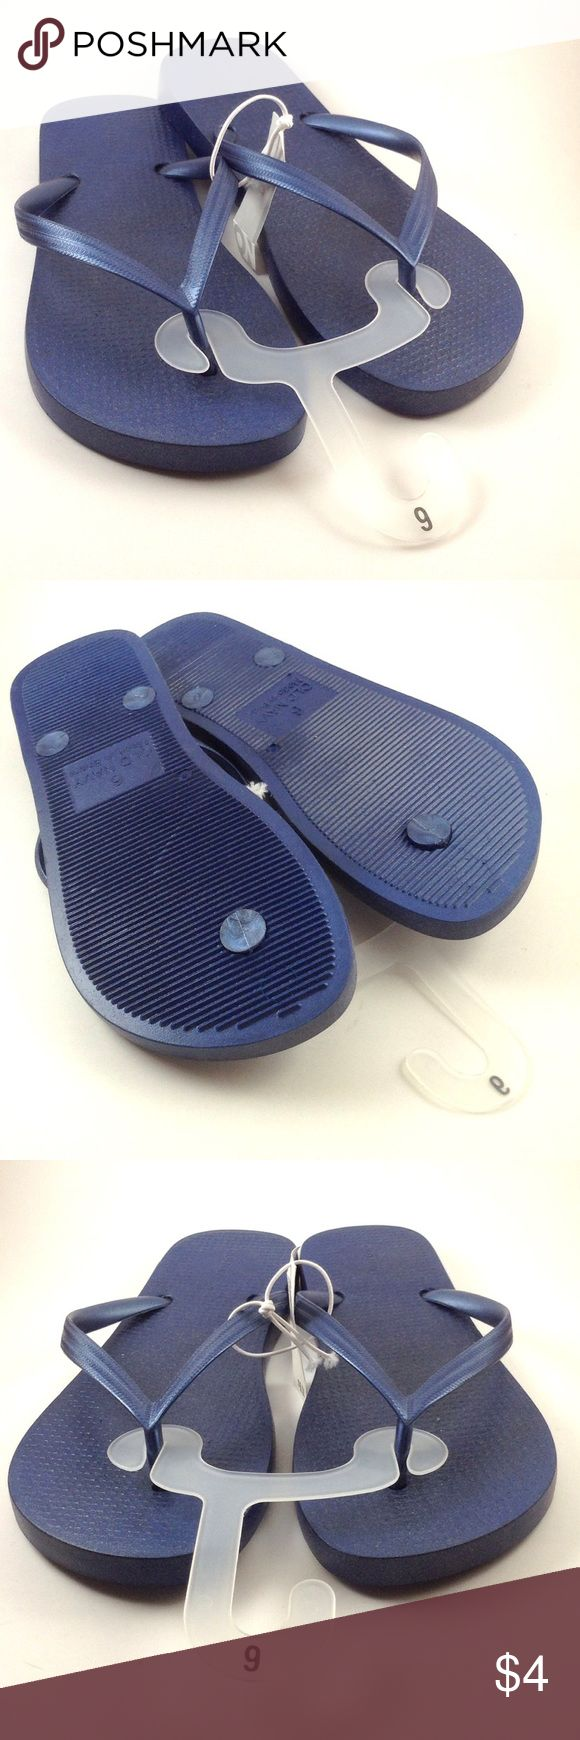 {Old Navy} Navy Flip flops These NWT plastic flip flops are perfect for the rainy spring and summer months yet have a chic style that will pair with any outfit. No signs of love. Old Navy Shoes Sandals